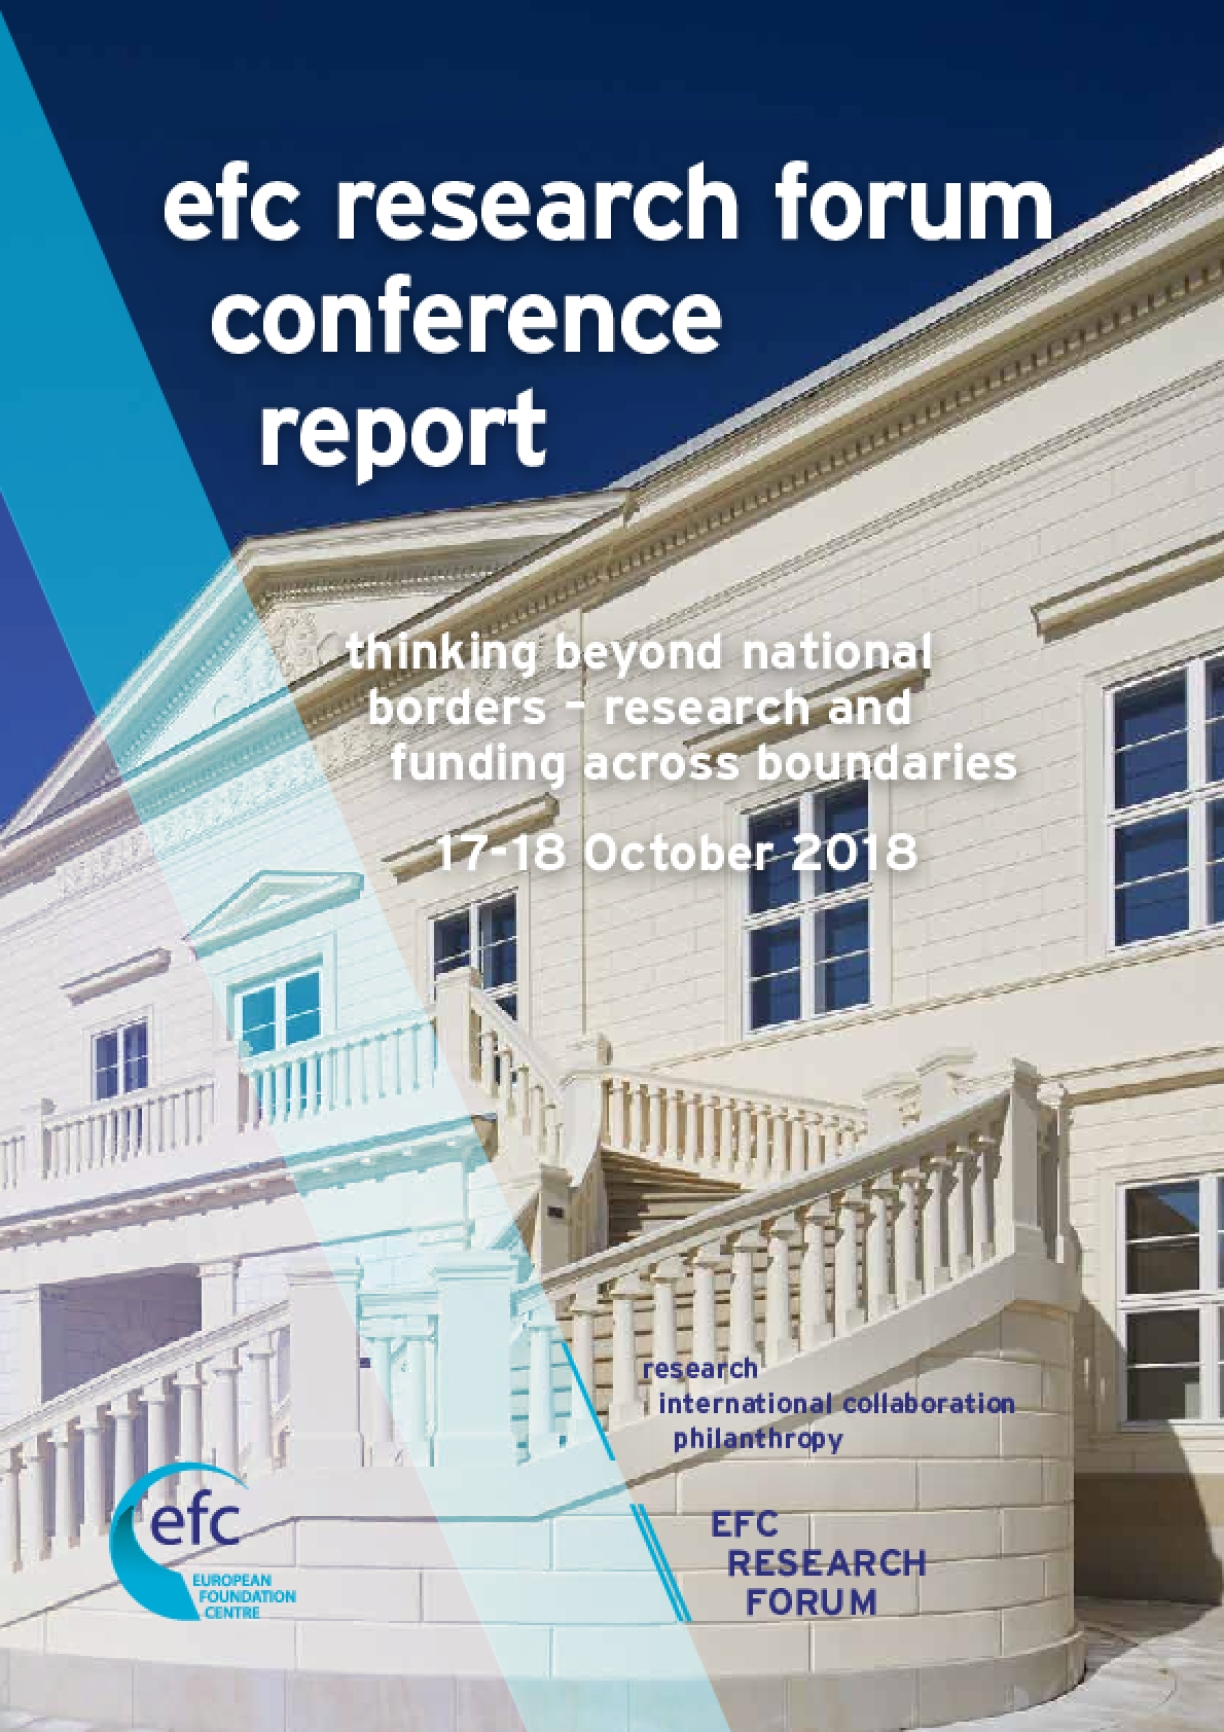 EFC Research Forum Conference Report : Thinking Beyond National Borders - Research and Funding Across Boundaries